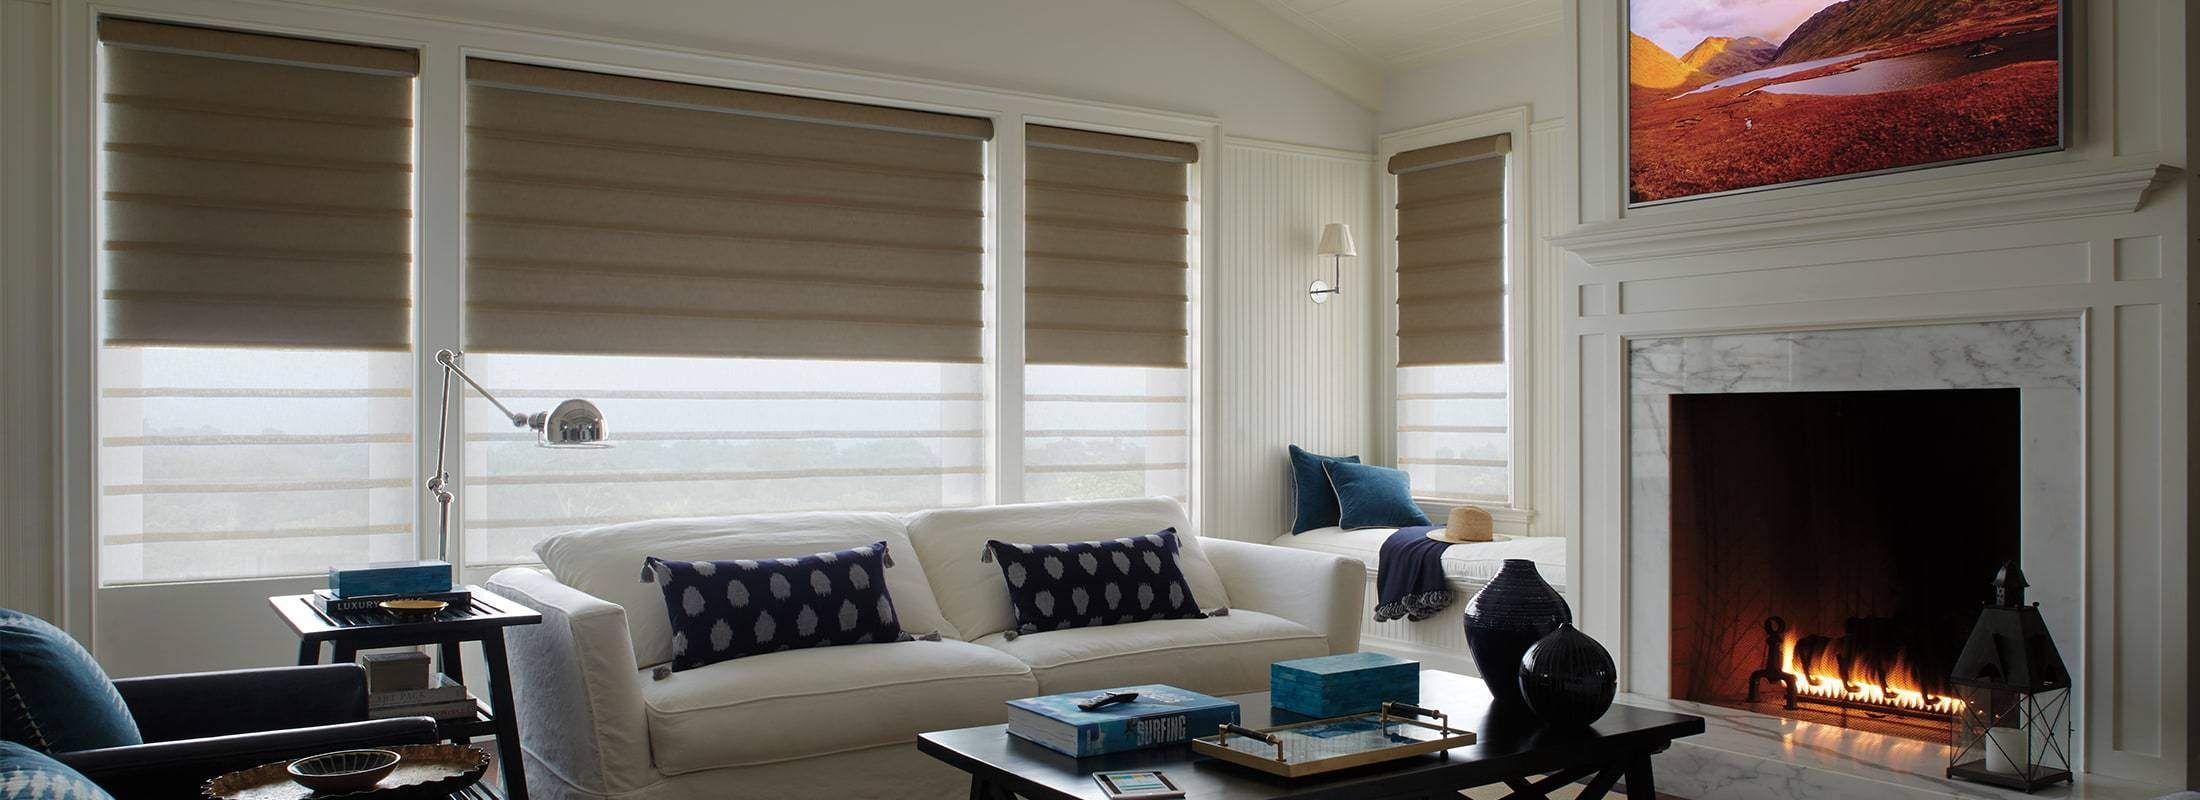 Vignette® Modern Roman Shades feature consistent folds and no exposed rear cords, keeping windows uncluttered and safer. Choose from different fold styles and sizes, and beautiful fabrics that are low maintenance and easy to clean. Learn more about Vignette® Modern Roman Shades.